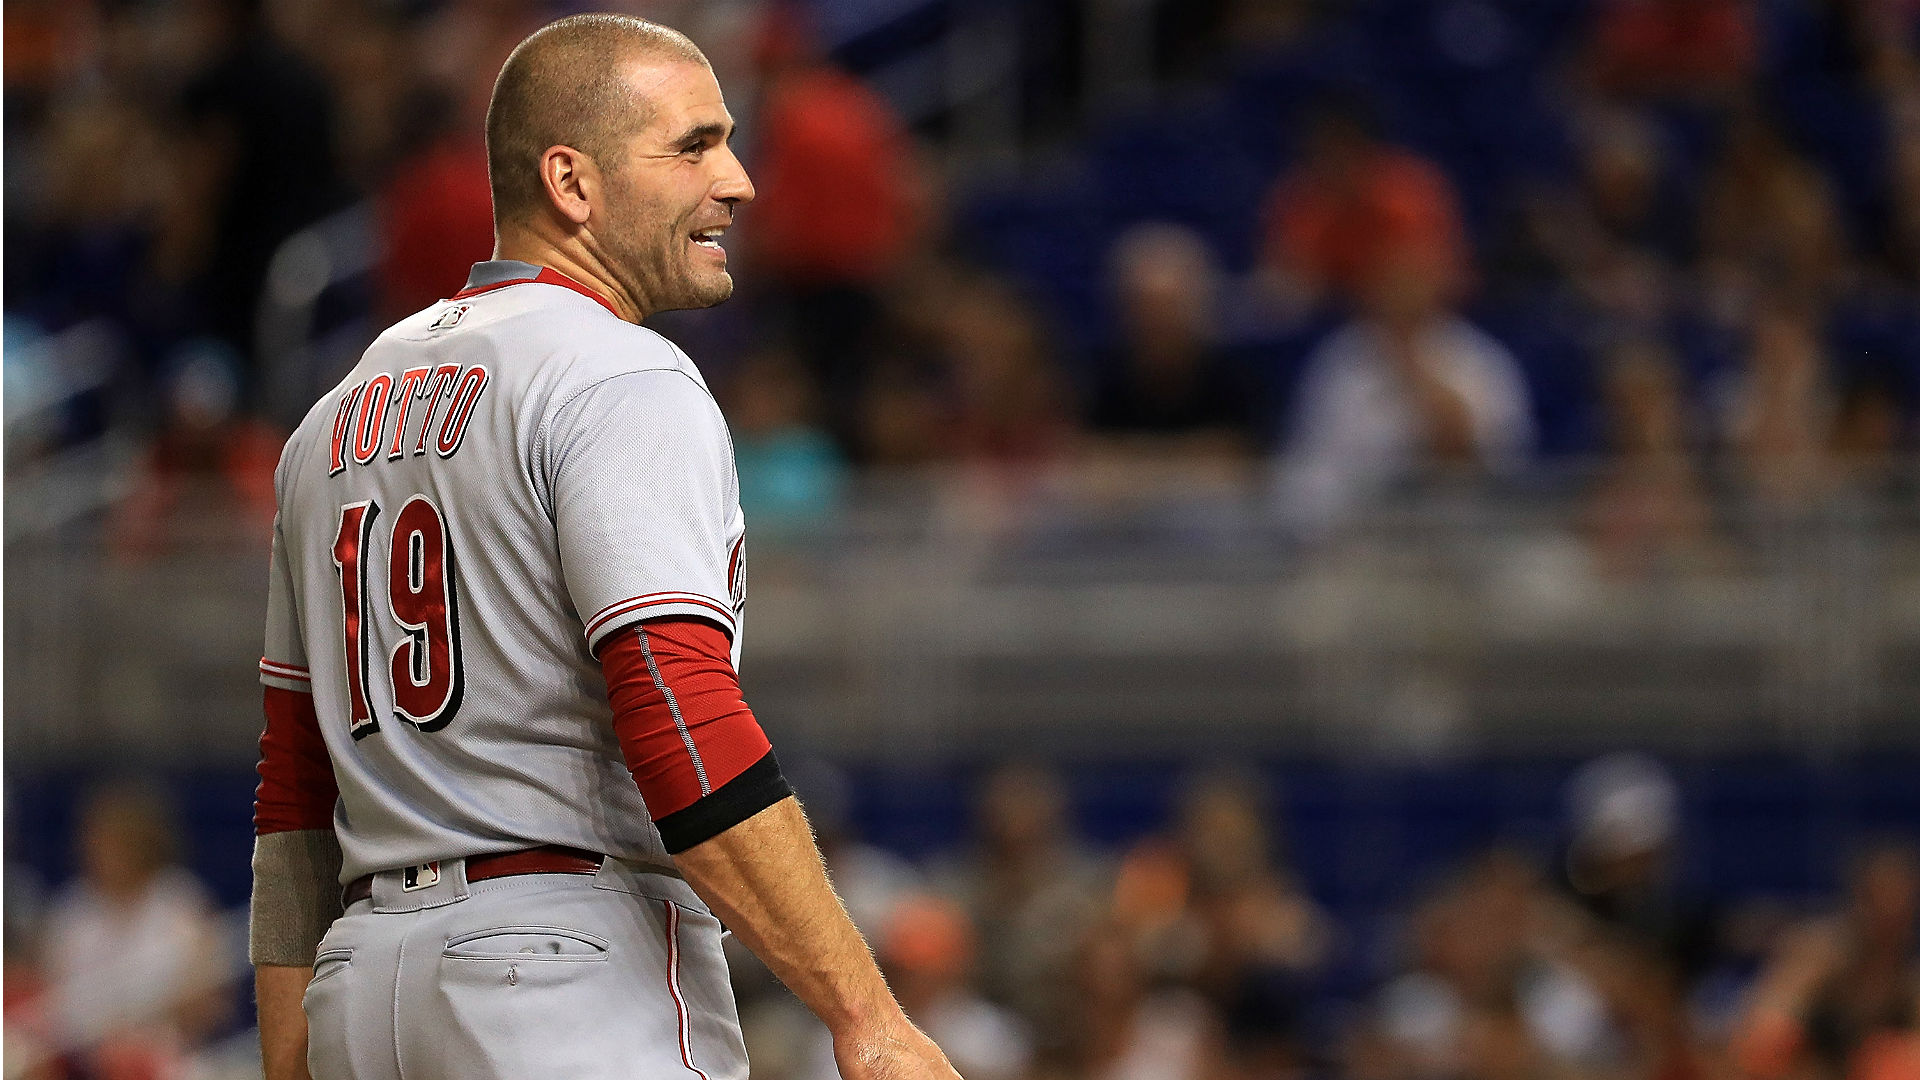 Joey Votto reminds fan he can't run for president while trading for his shirt